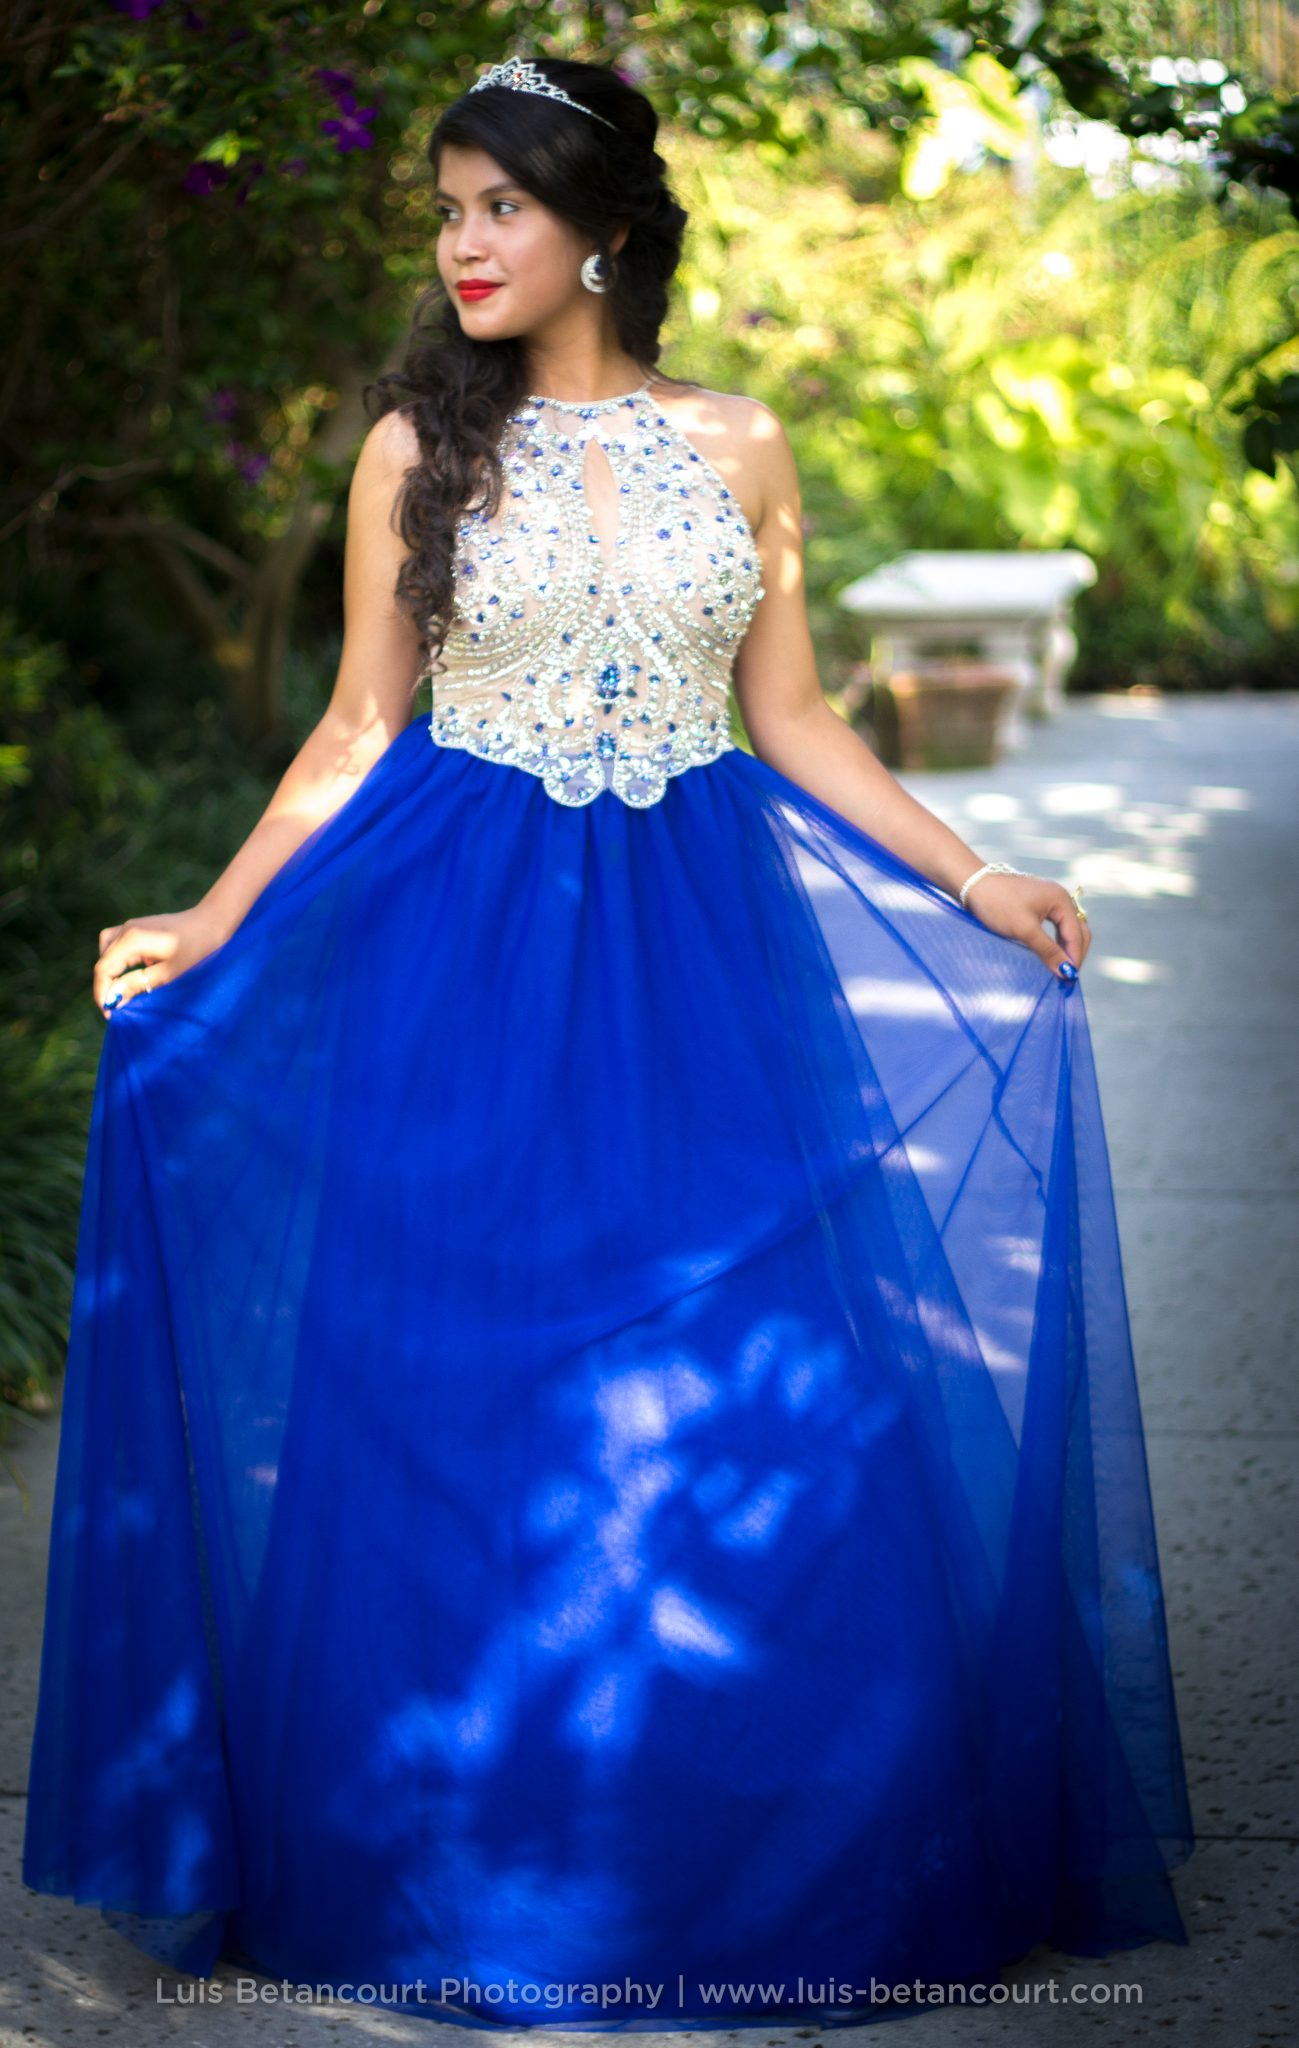 Quinceanera Photography in Lakeland, Tiara. Dress